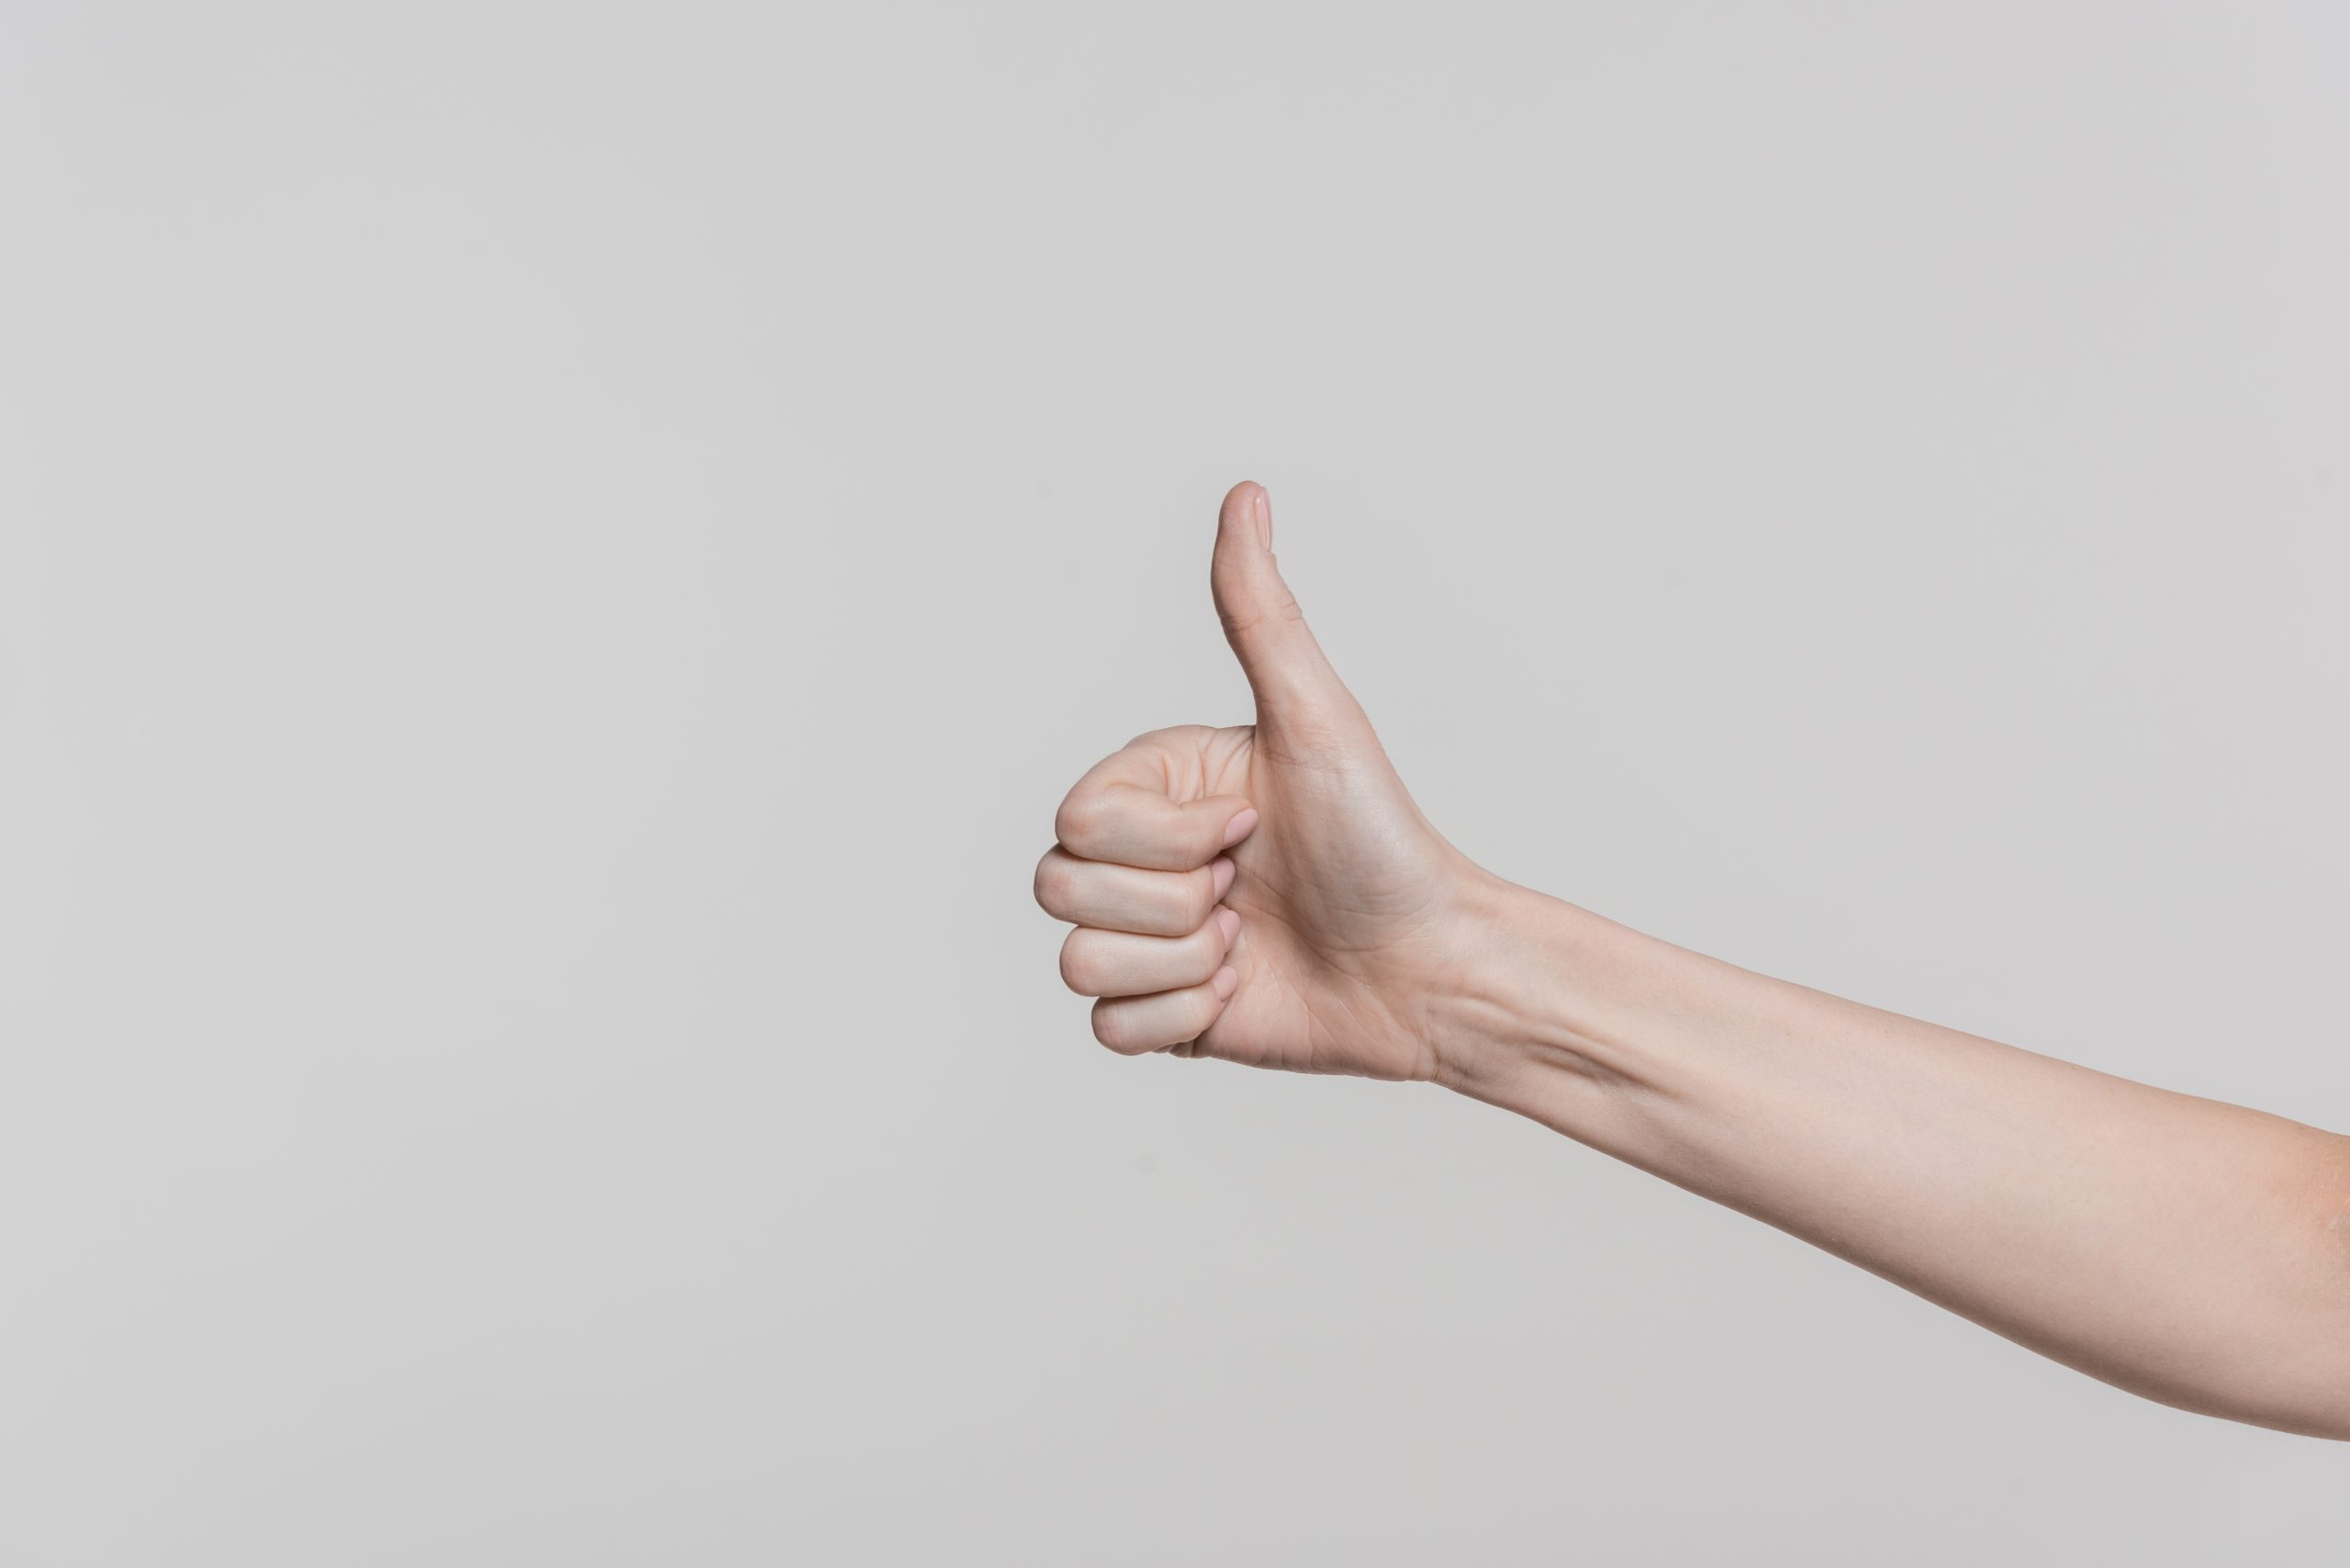 Person showing thumbs up